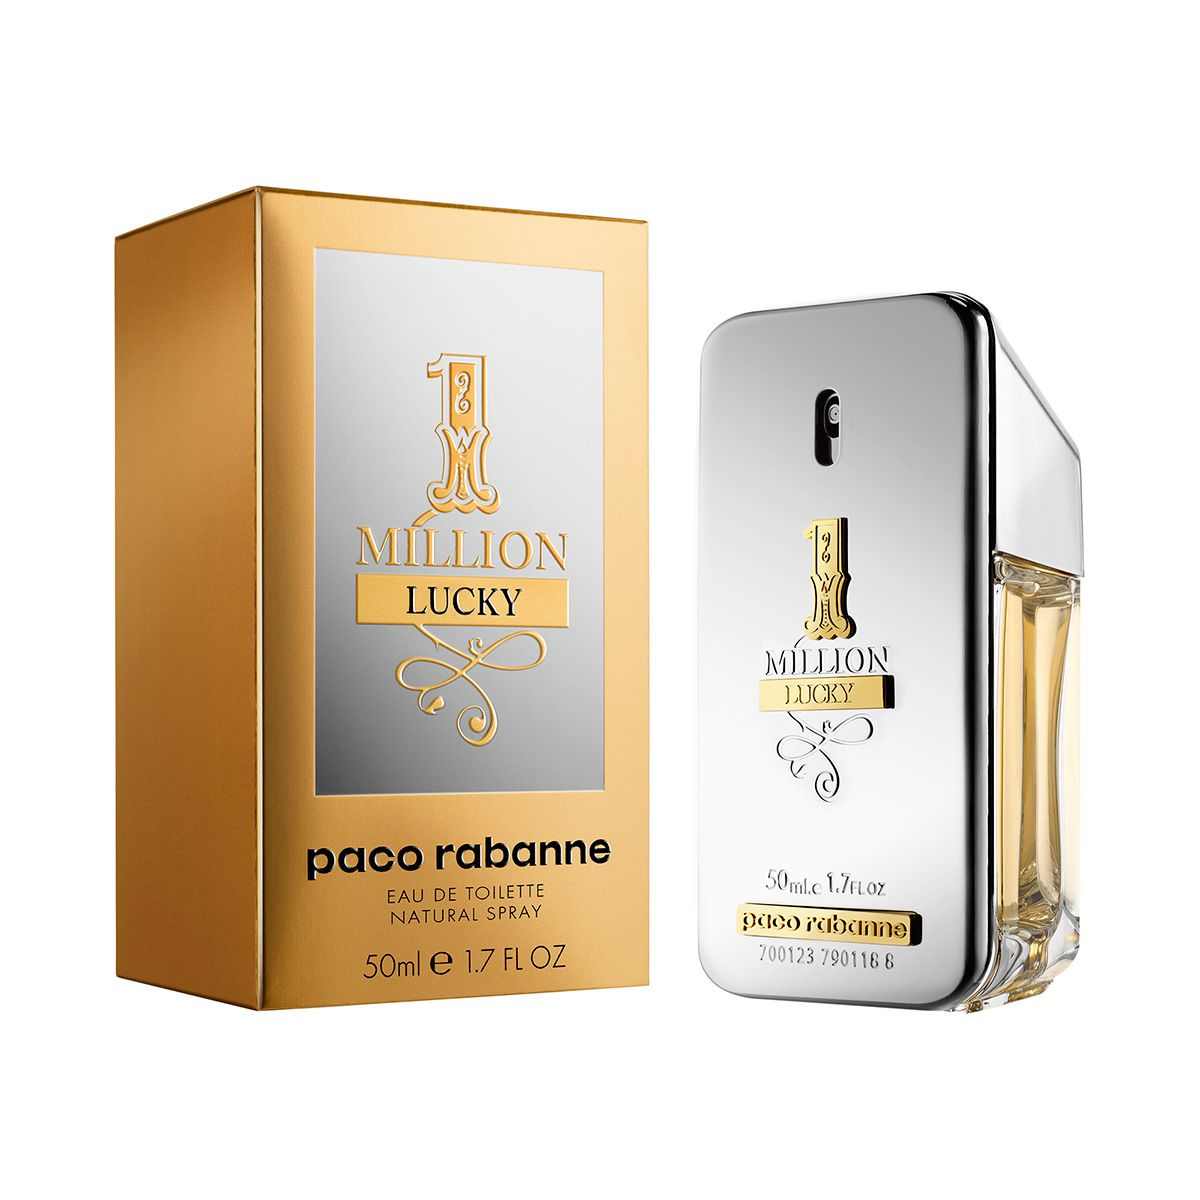 1 MILLION LUCKY EDT 50ML